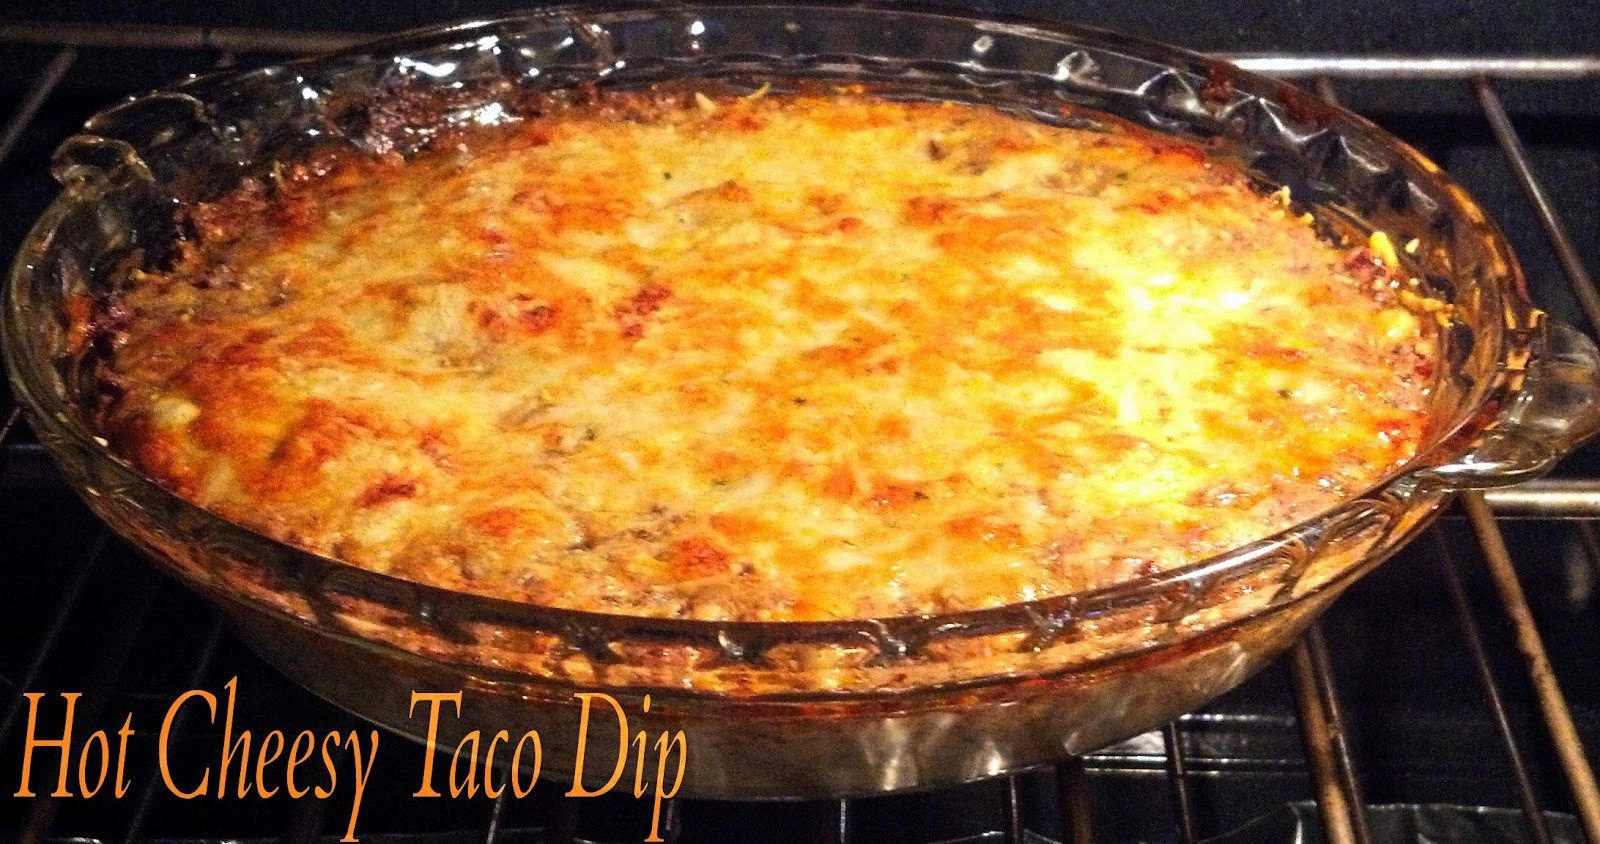 Hot Cheesy Taco Dip Recipe Taco Dip Mexican Food Recipes Recipes